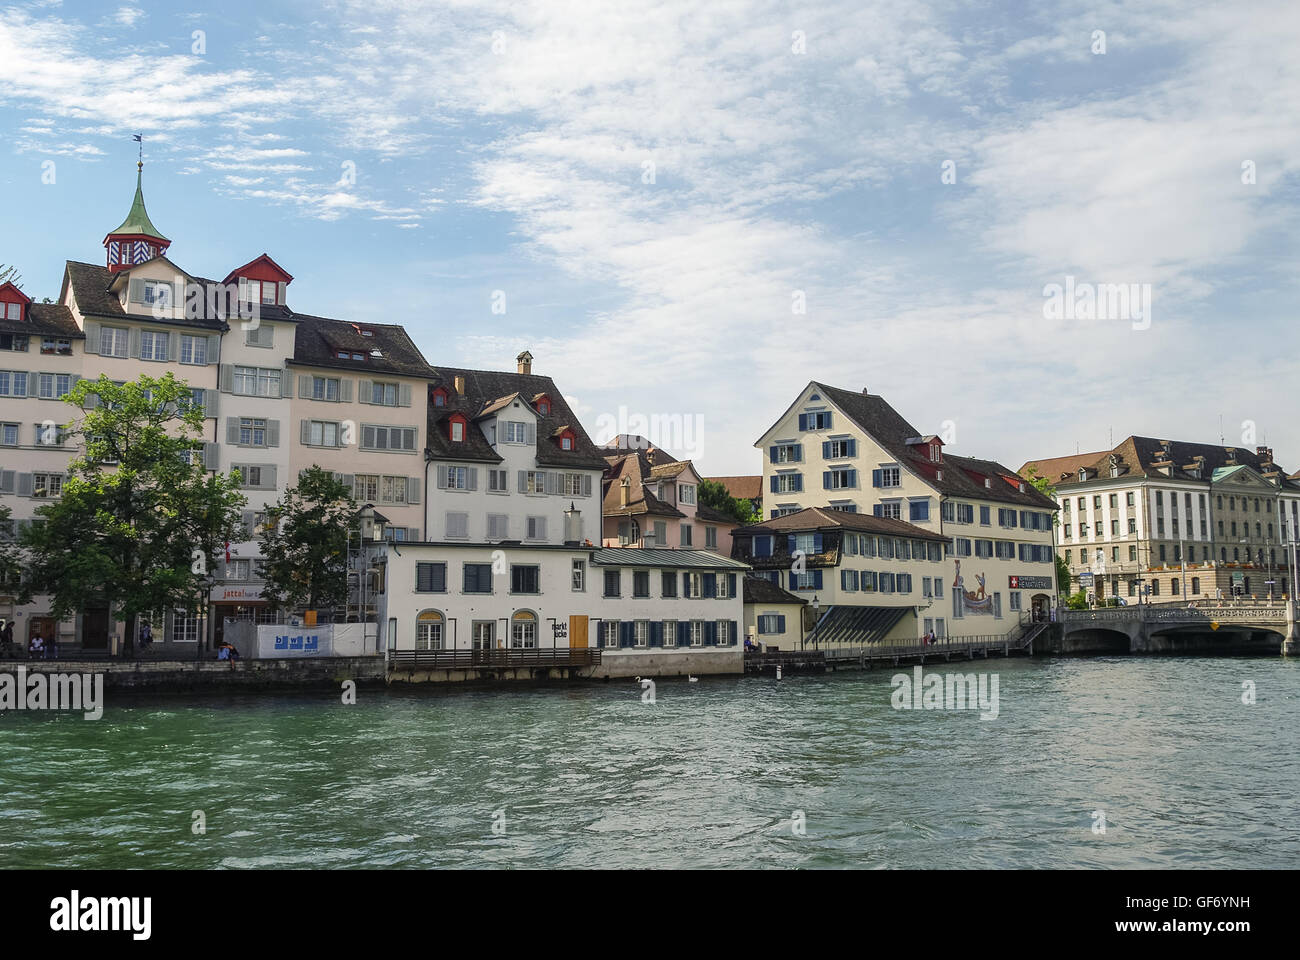 Zurich, Switzerland- august 22, 2010: Traditional houses on embankment Limmat river in historic Zurich city center - Stock Image